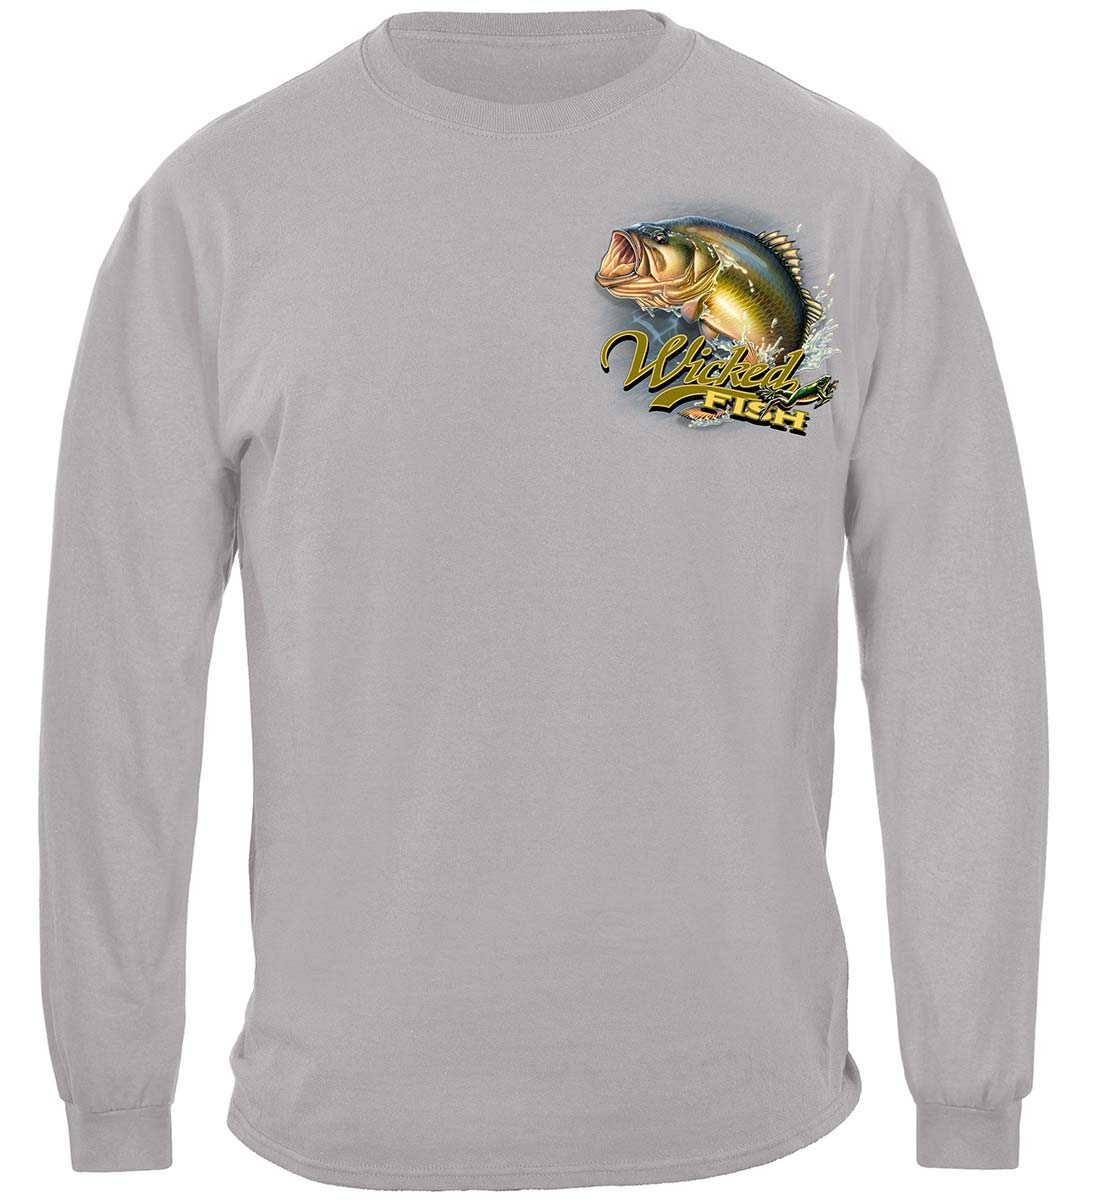 Wicked Fish Large Mouth Bass With Popper Jumping Frog Premium Long Sleeves